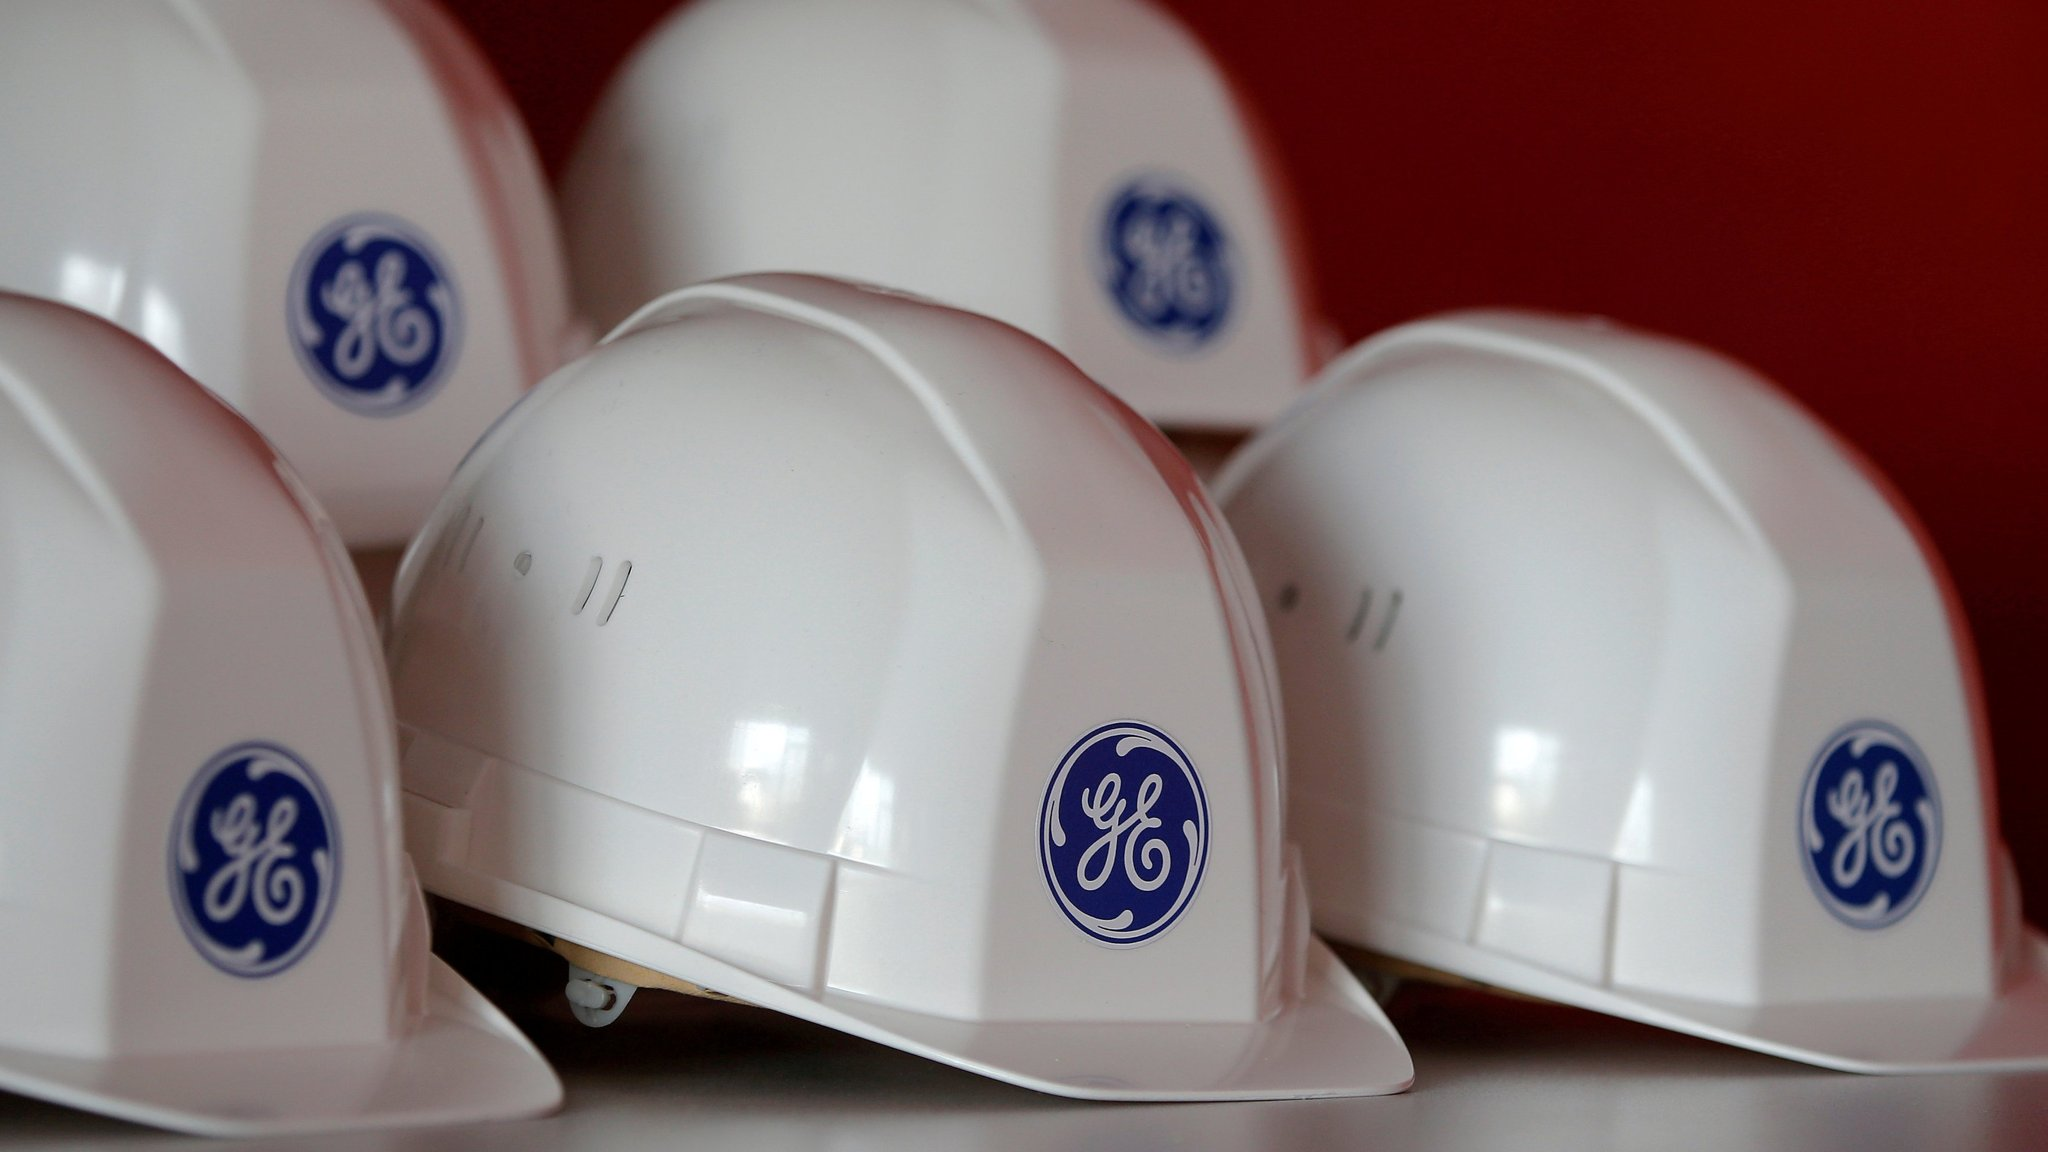 GE cuts 12,000 jobs in power equipment division